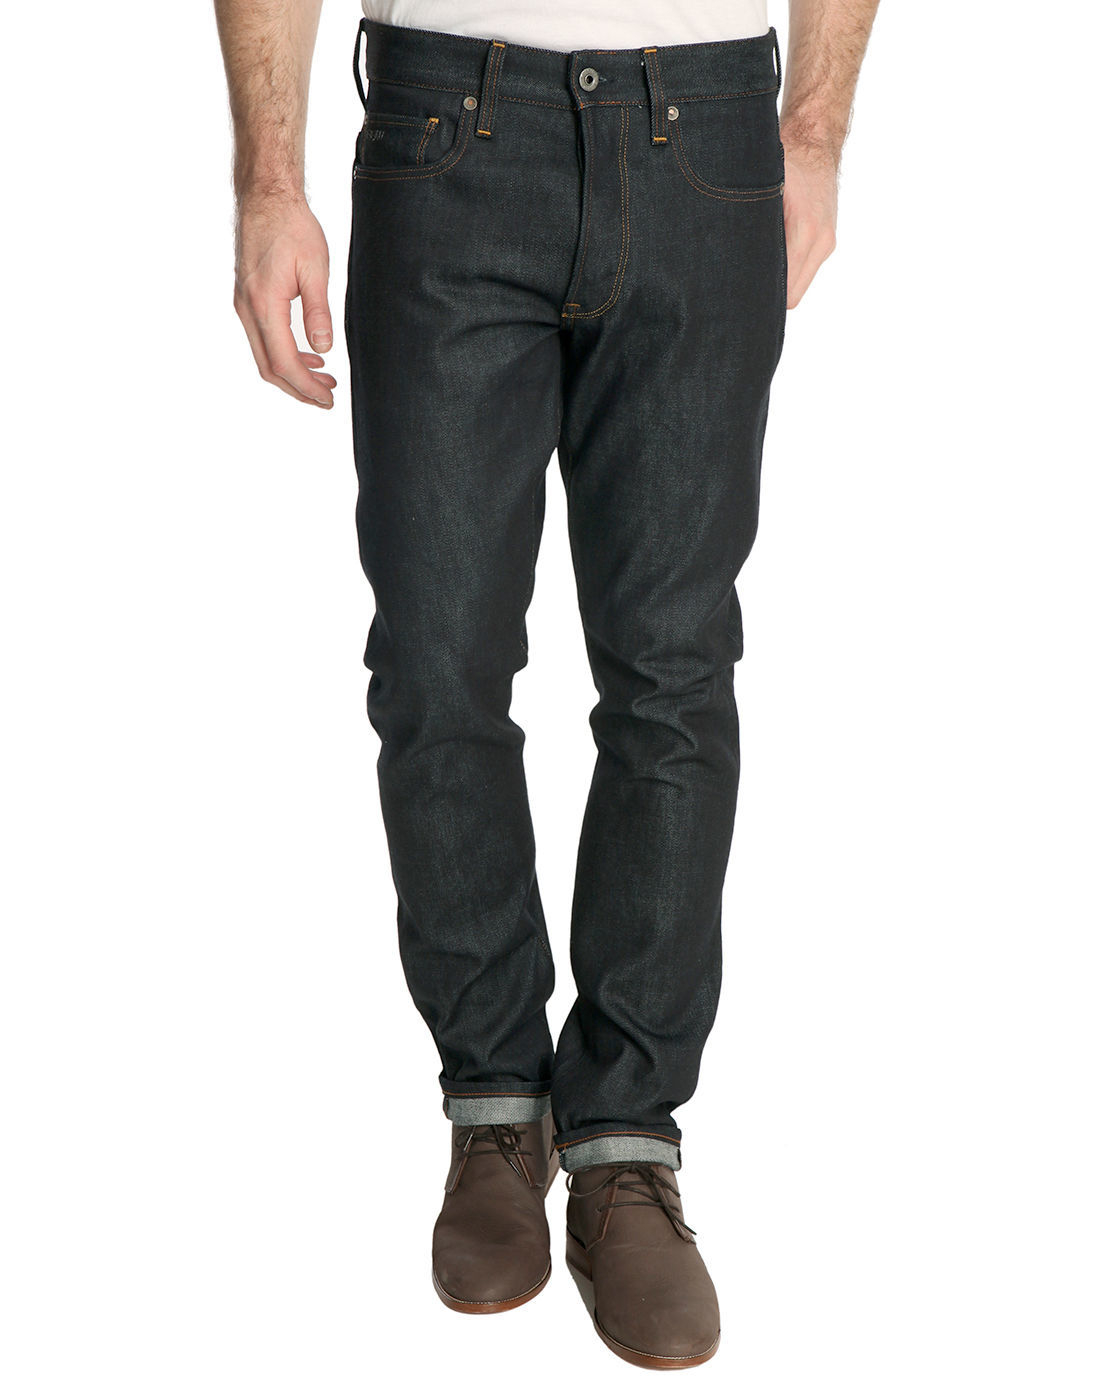 g star raw 3301 raw denim tapered jean in blue for men. Black Bedroom Furniture Sets. Home Design Ideas